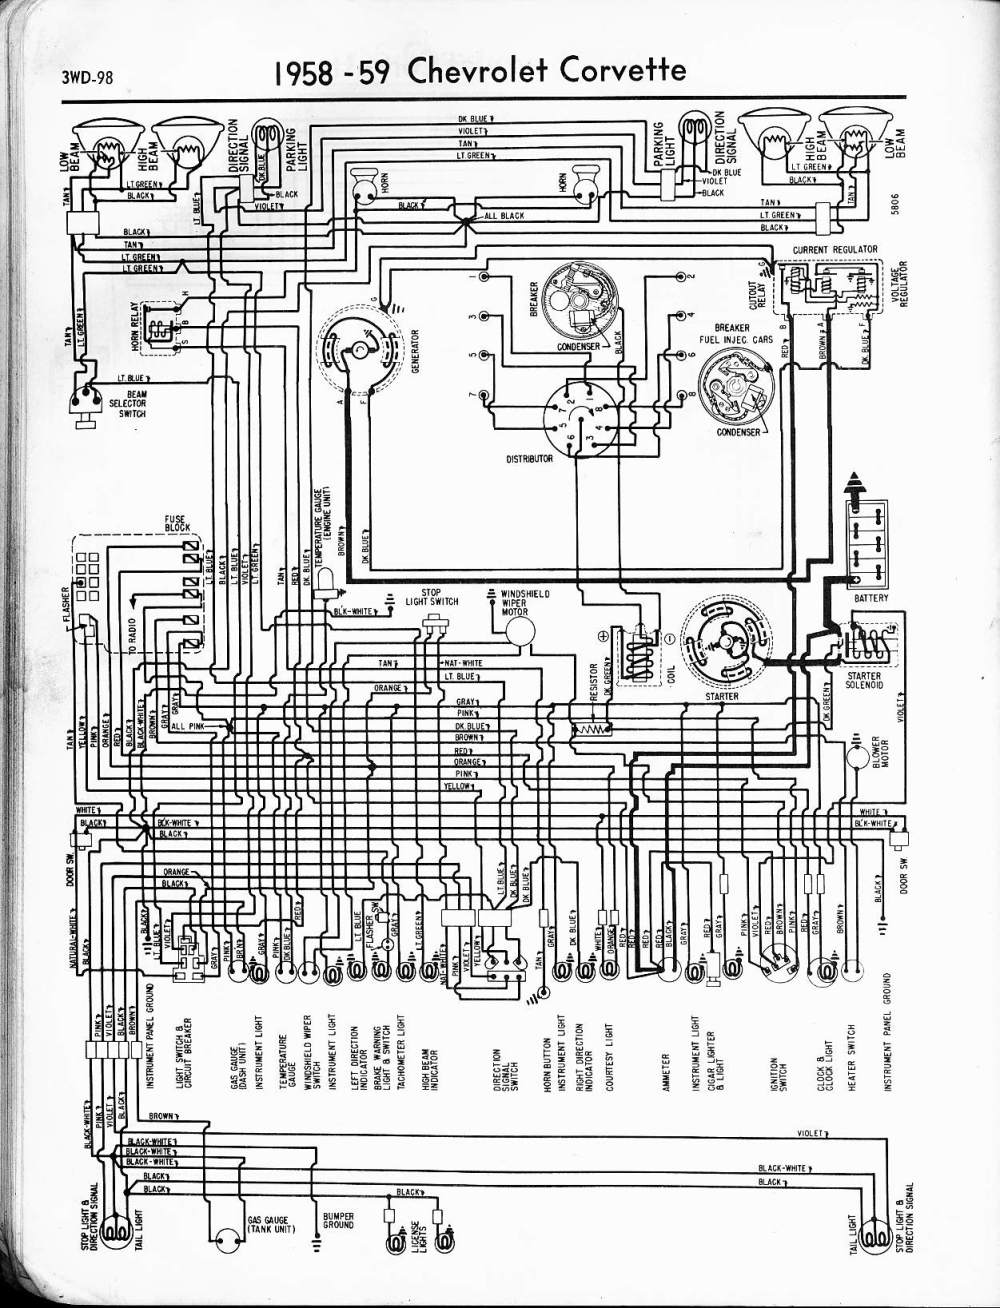 medium resolution of 1958 impala wiring diagram wiring diagram todays 1997 corvette wiring diagram 1958 corvette wiring diagram